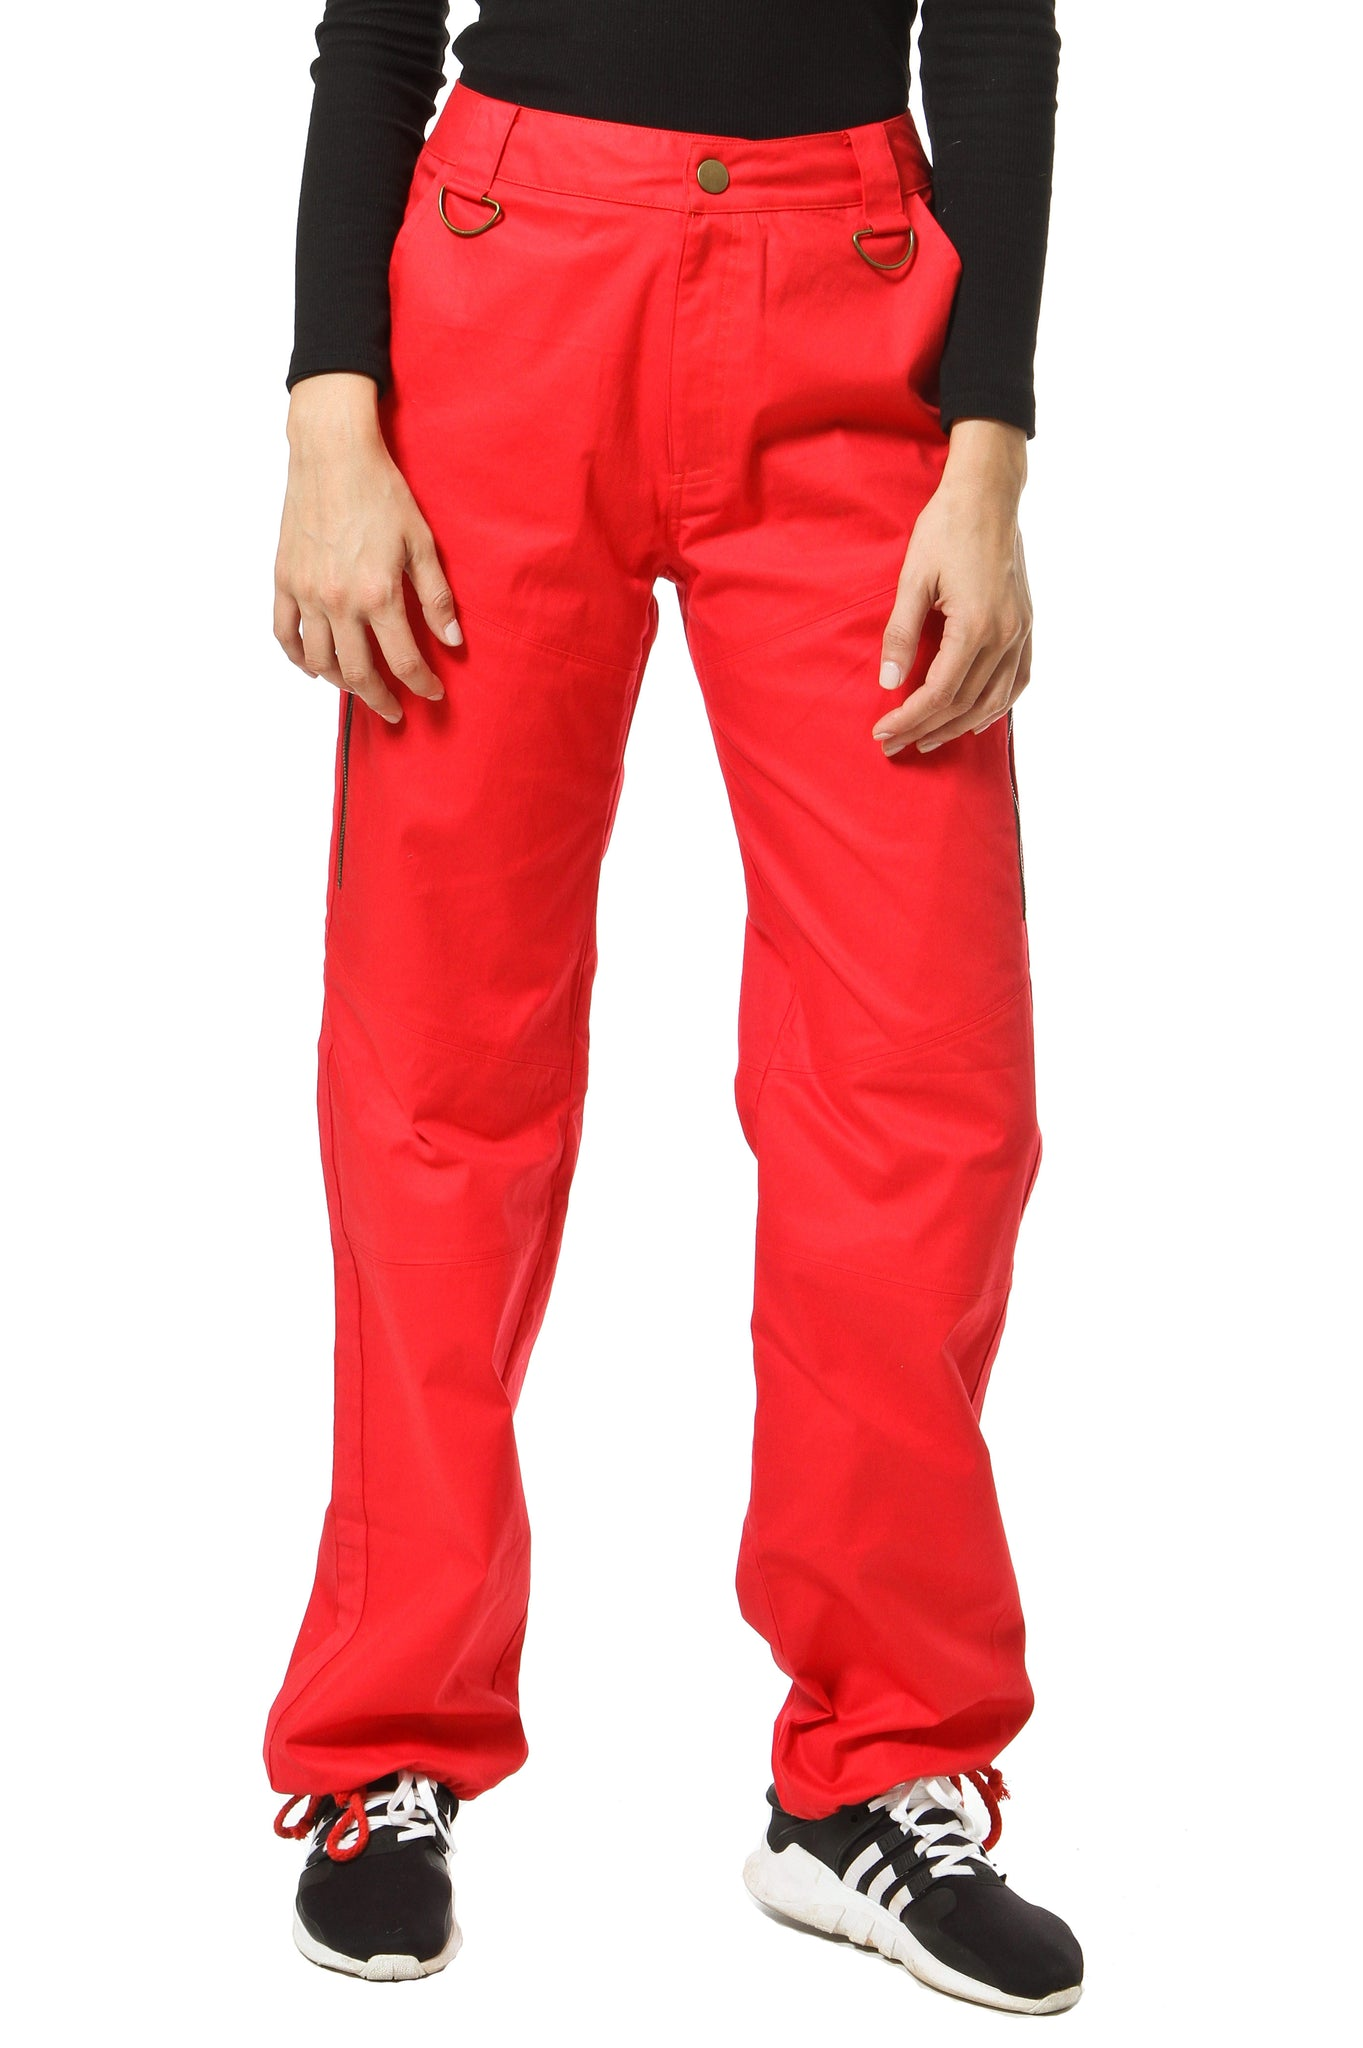 Parachute Pants - Red